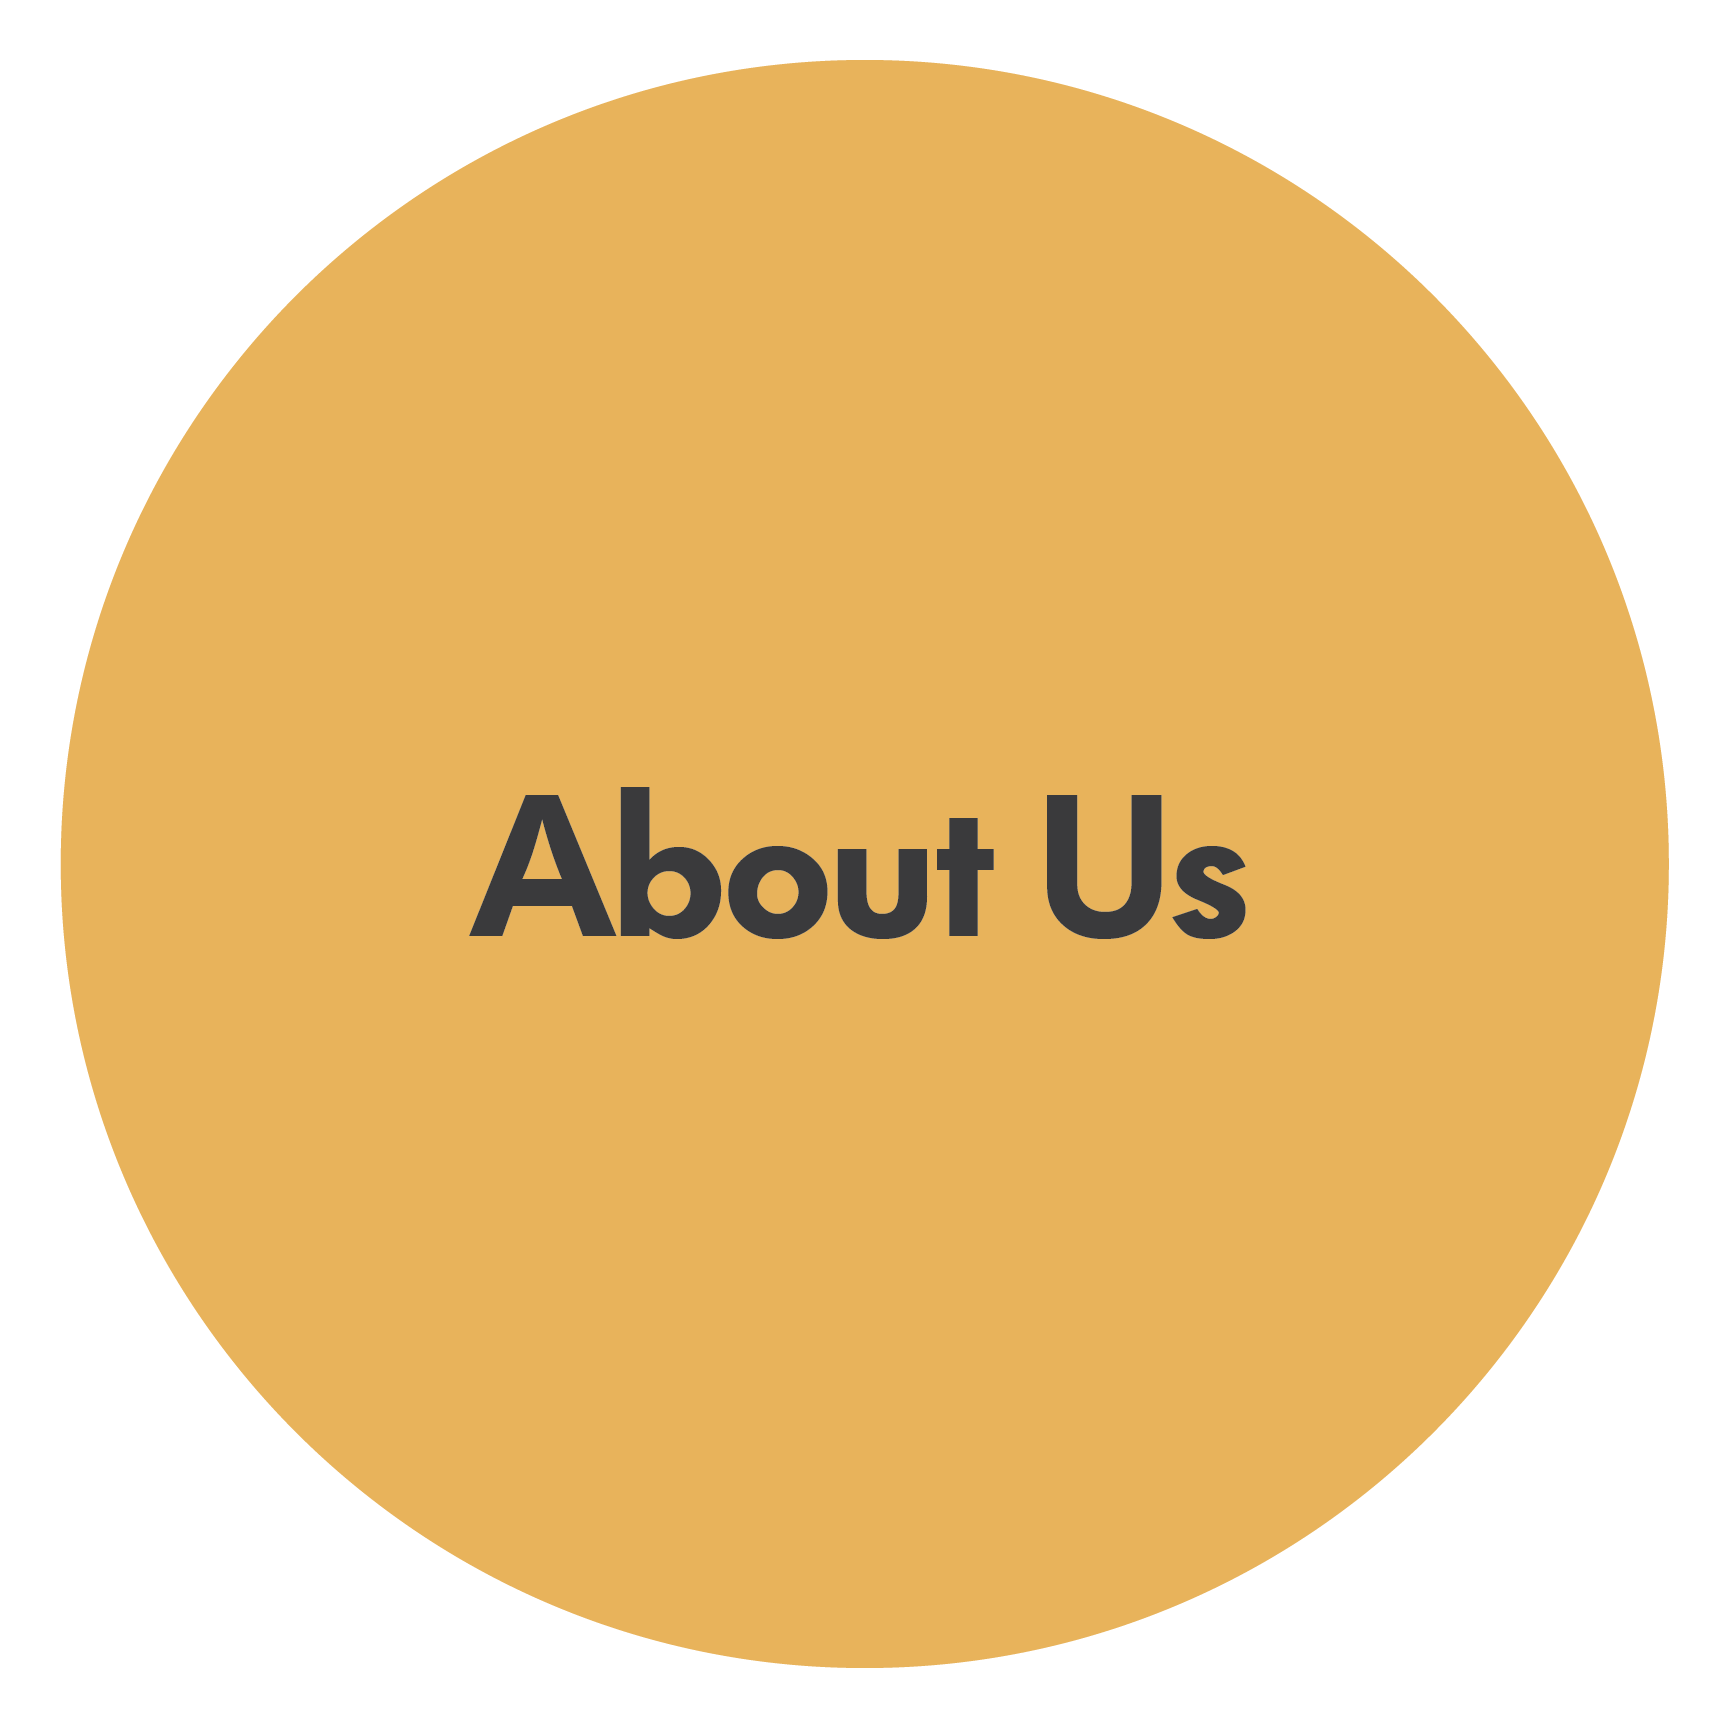 About Us Circle.png